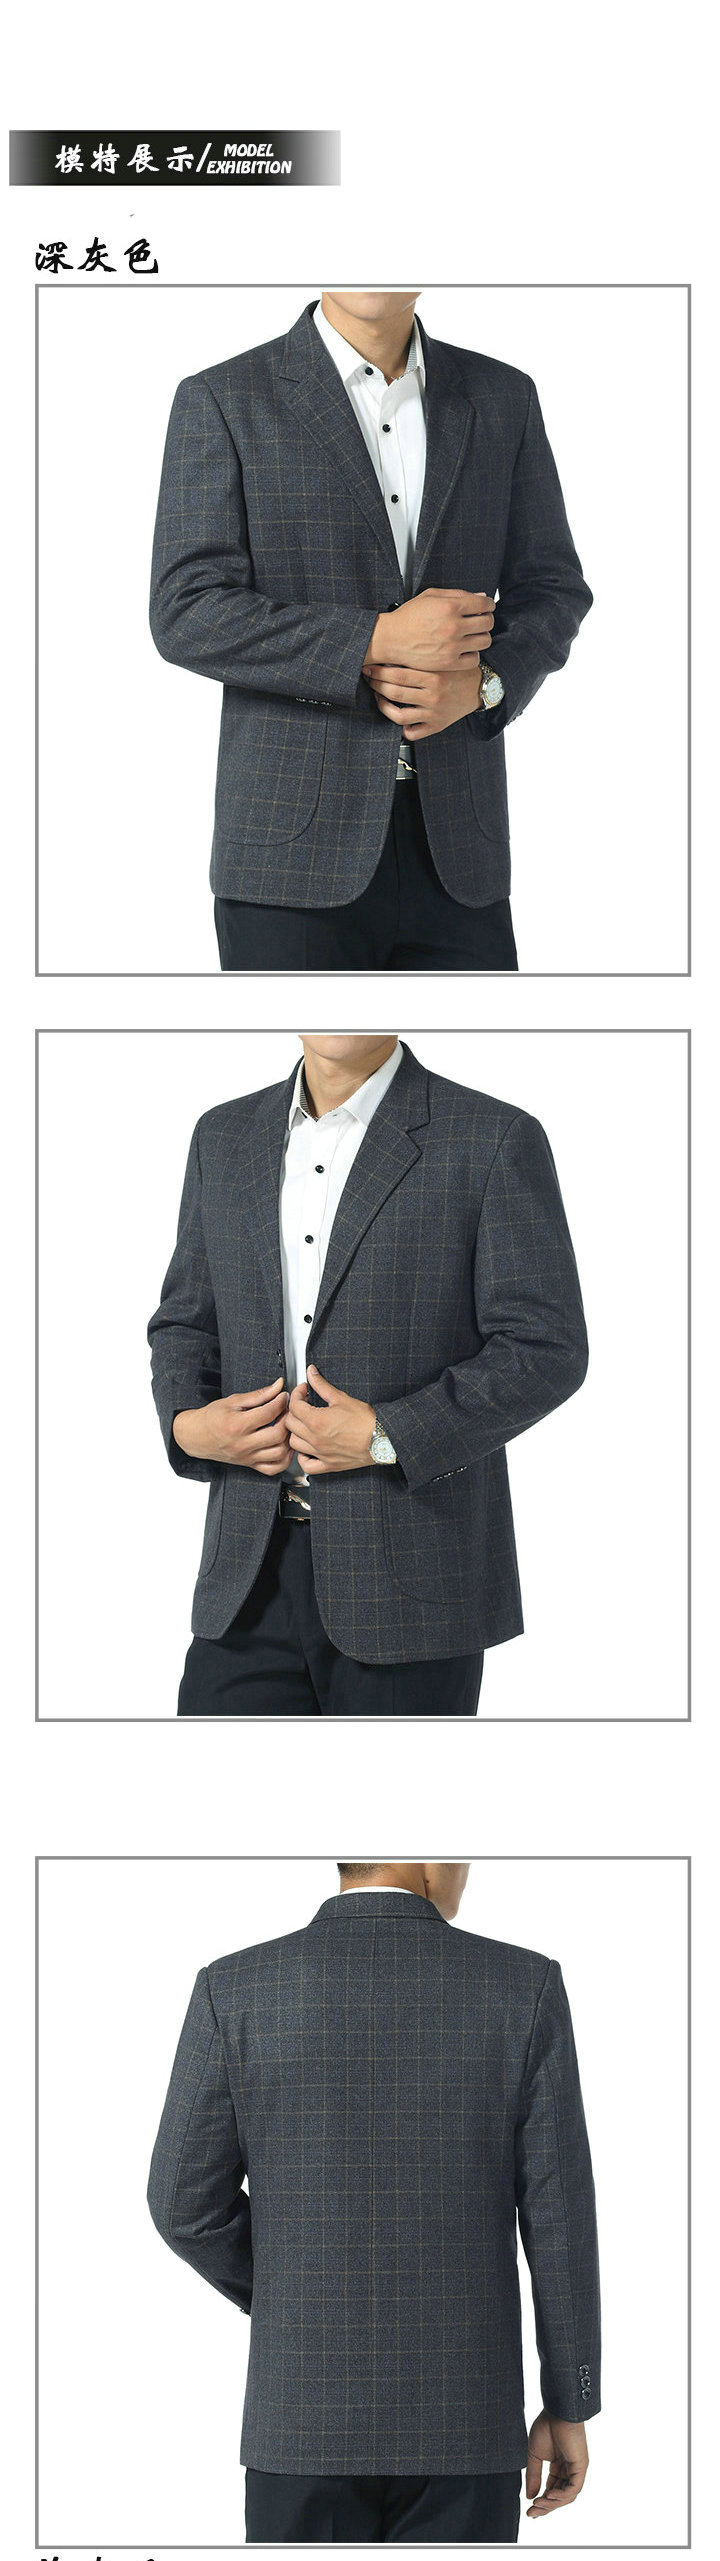 WAEOLSA Father  Blazer Blue Gray Plaid Jacket Suit Mature Men Business Casual Blazers Spring Autumn Garment Man Suit Coat (4)